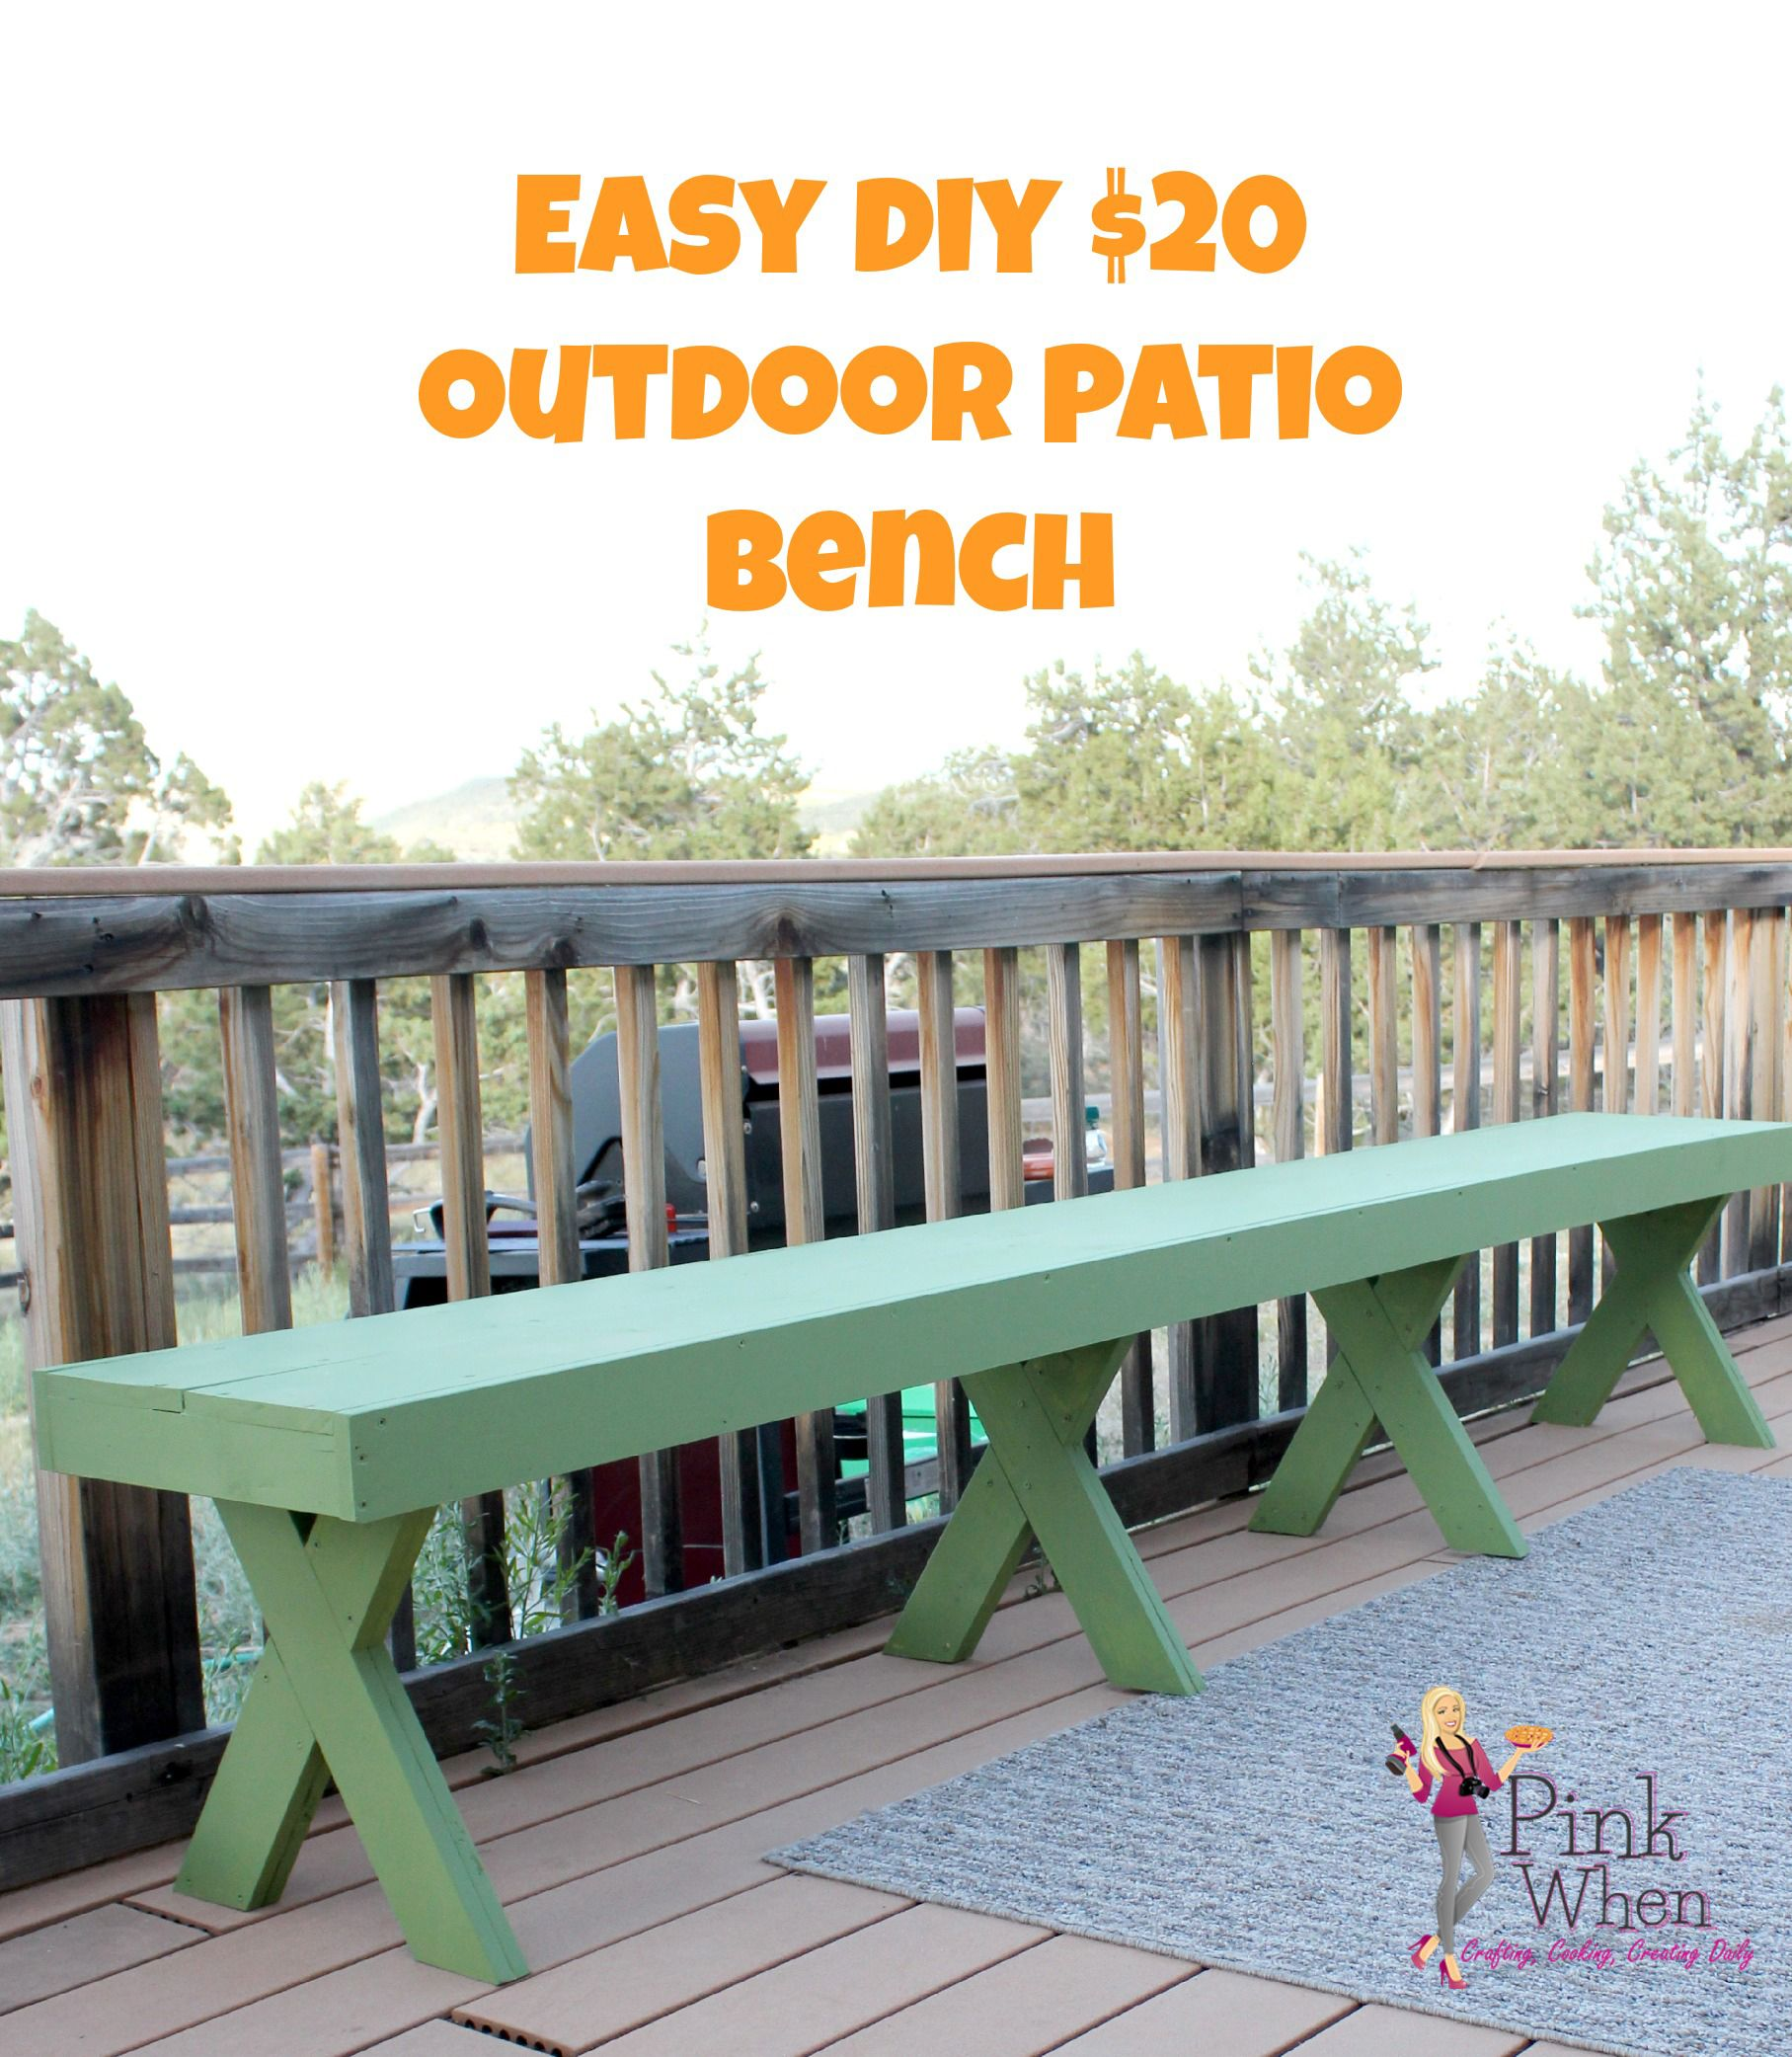 7 Affordable Landscaping Ideas For Under 1 000: Patio Bench, Diy Bench, Backyard